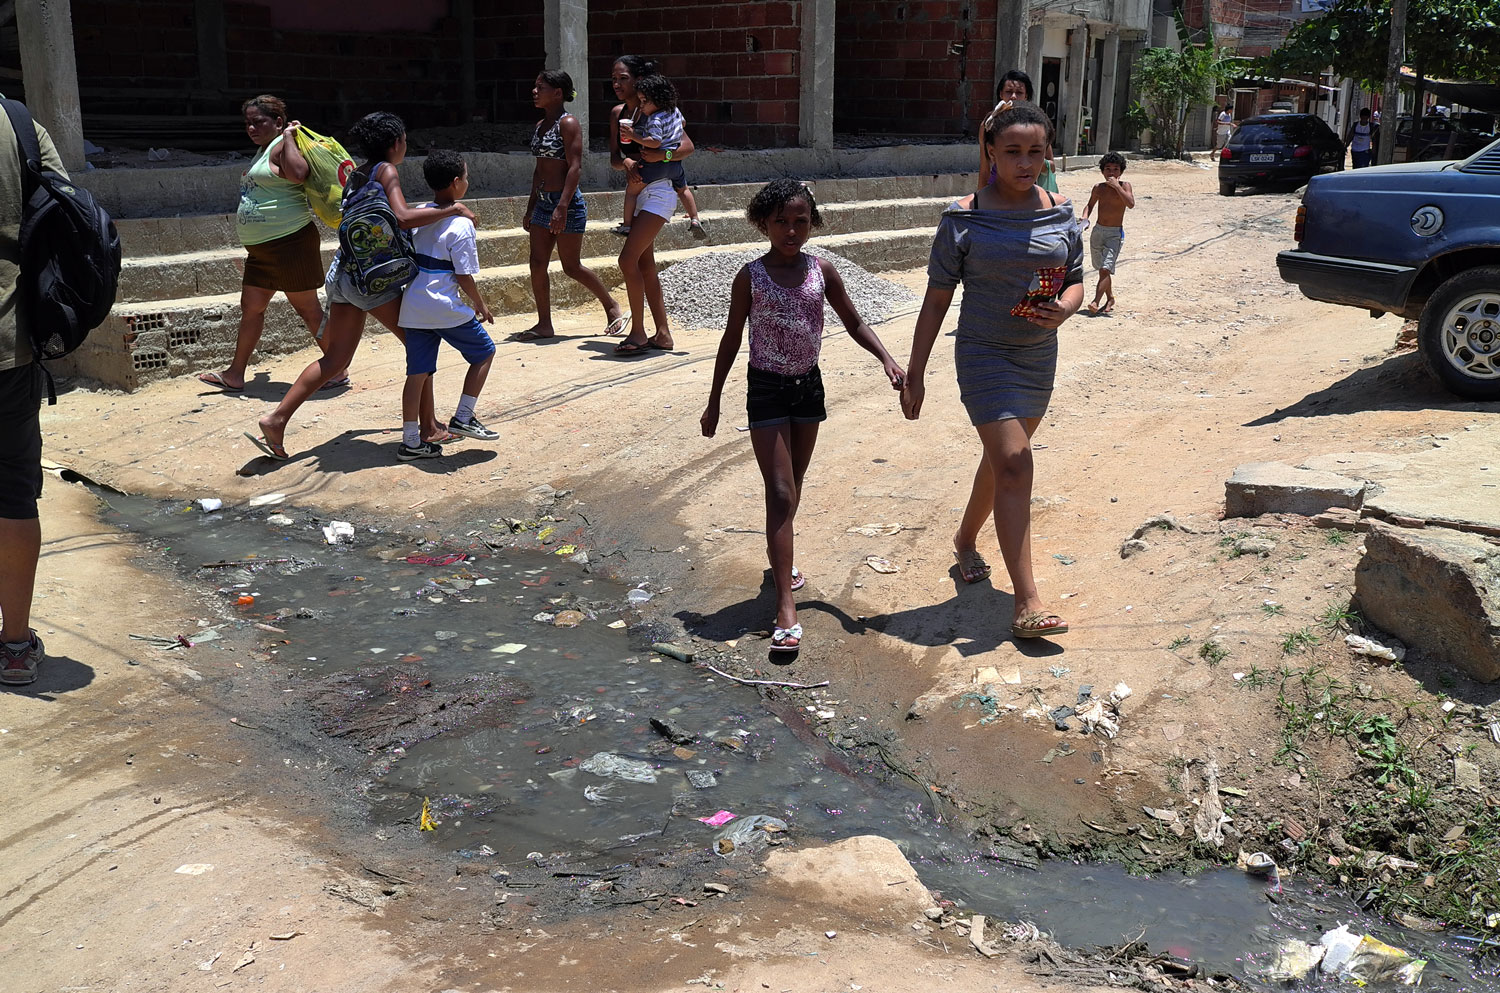 A lack of sanitation and use of the water courses as waste disposal means that public space becomes defined by rubbish and open sewage, damaging pride in neighbourhoods and leading to social conflict.